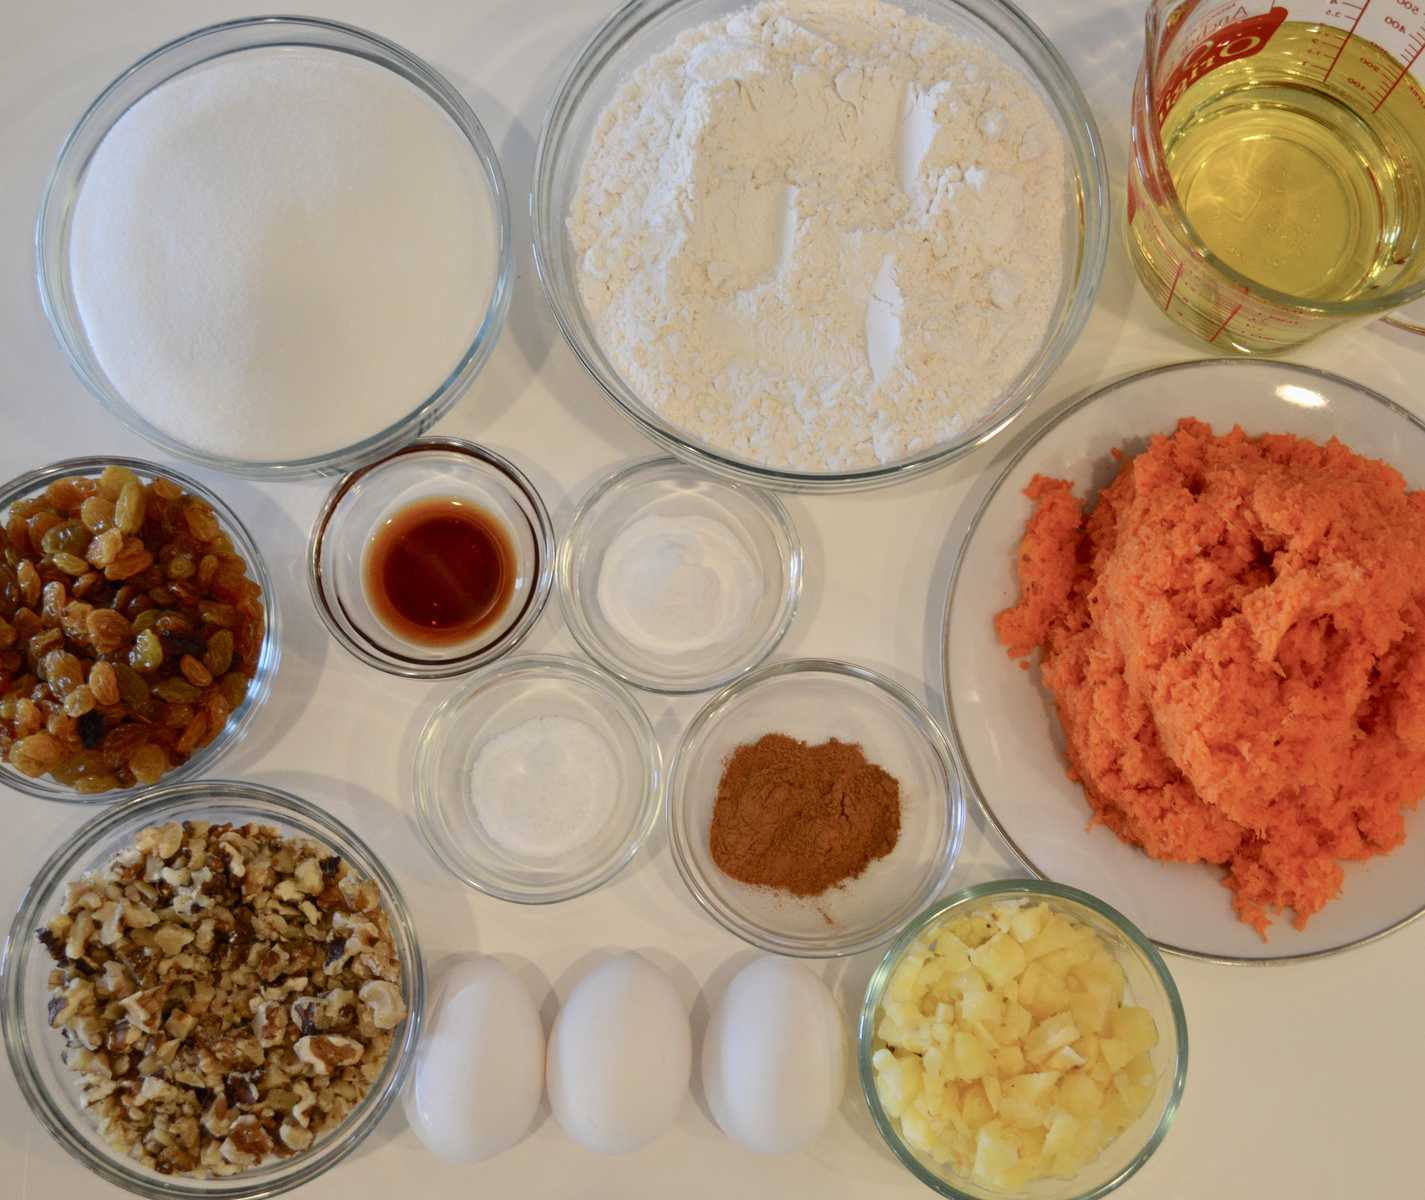 Ingredients for Carrot Pineapple Cake on a white background